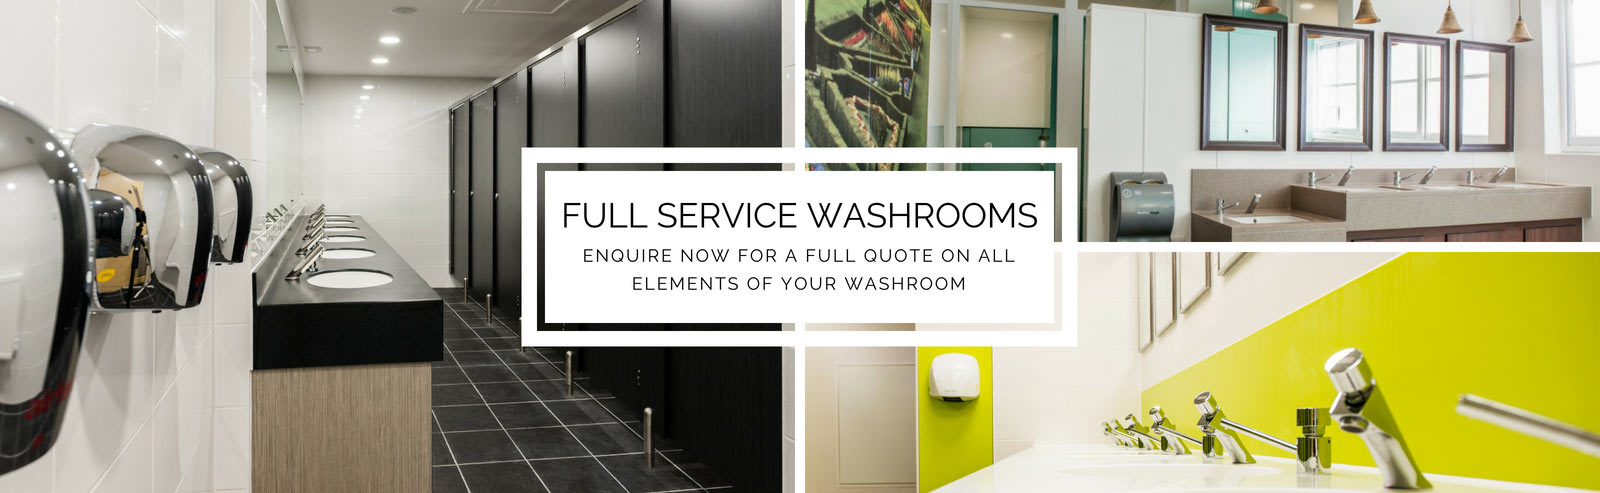 Commercial Washrooms   Enquire Today